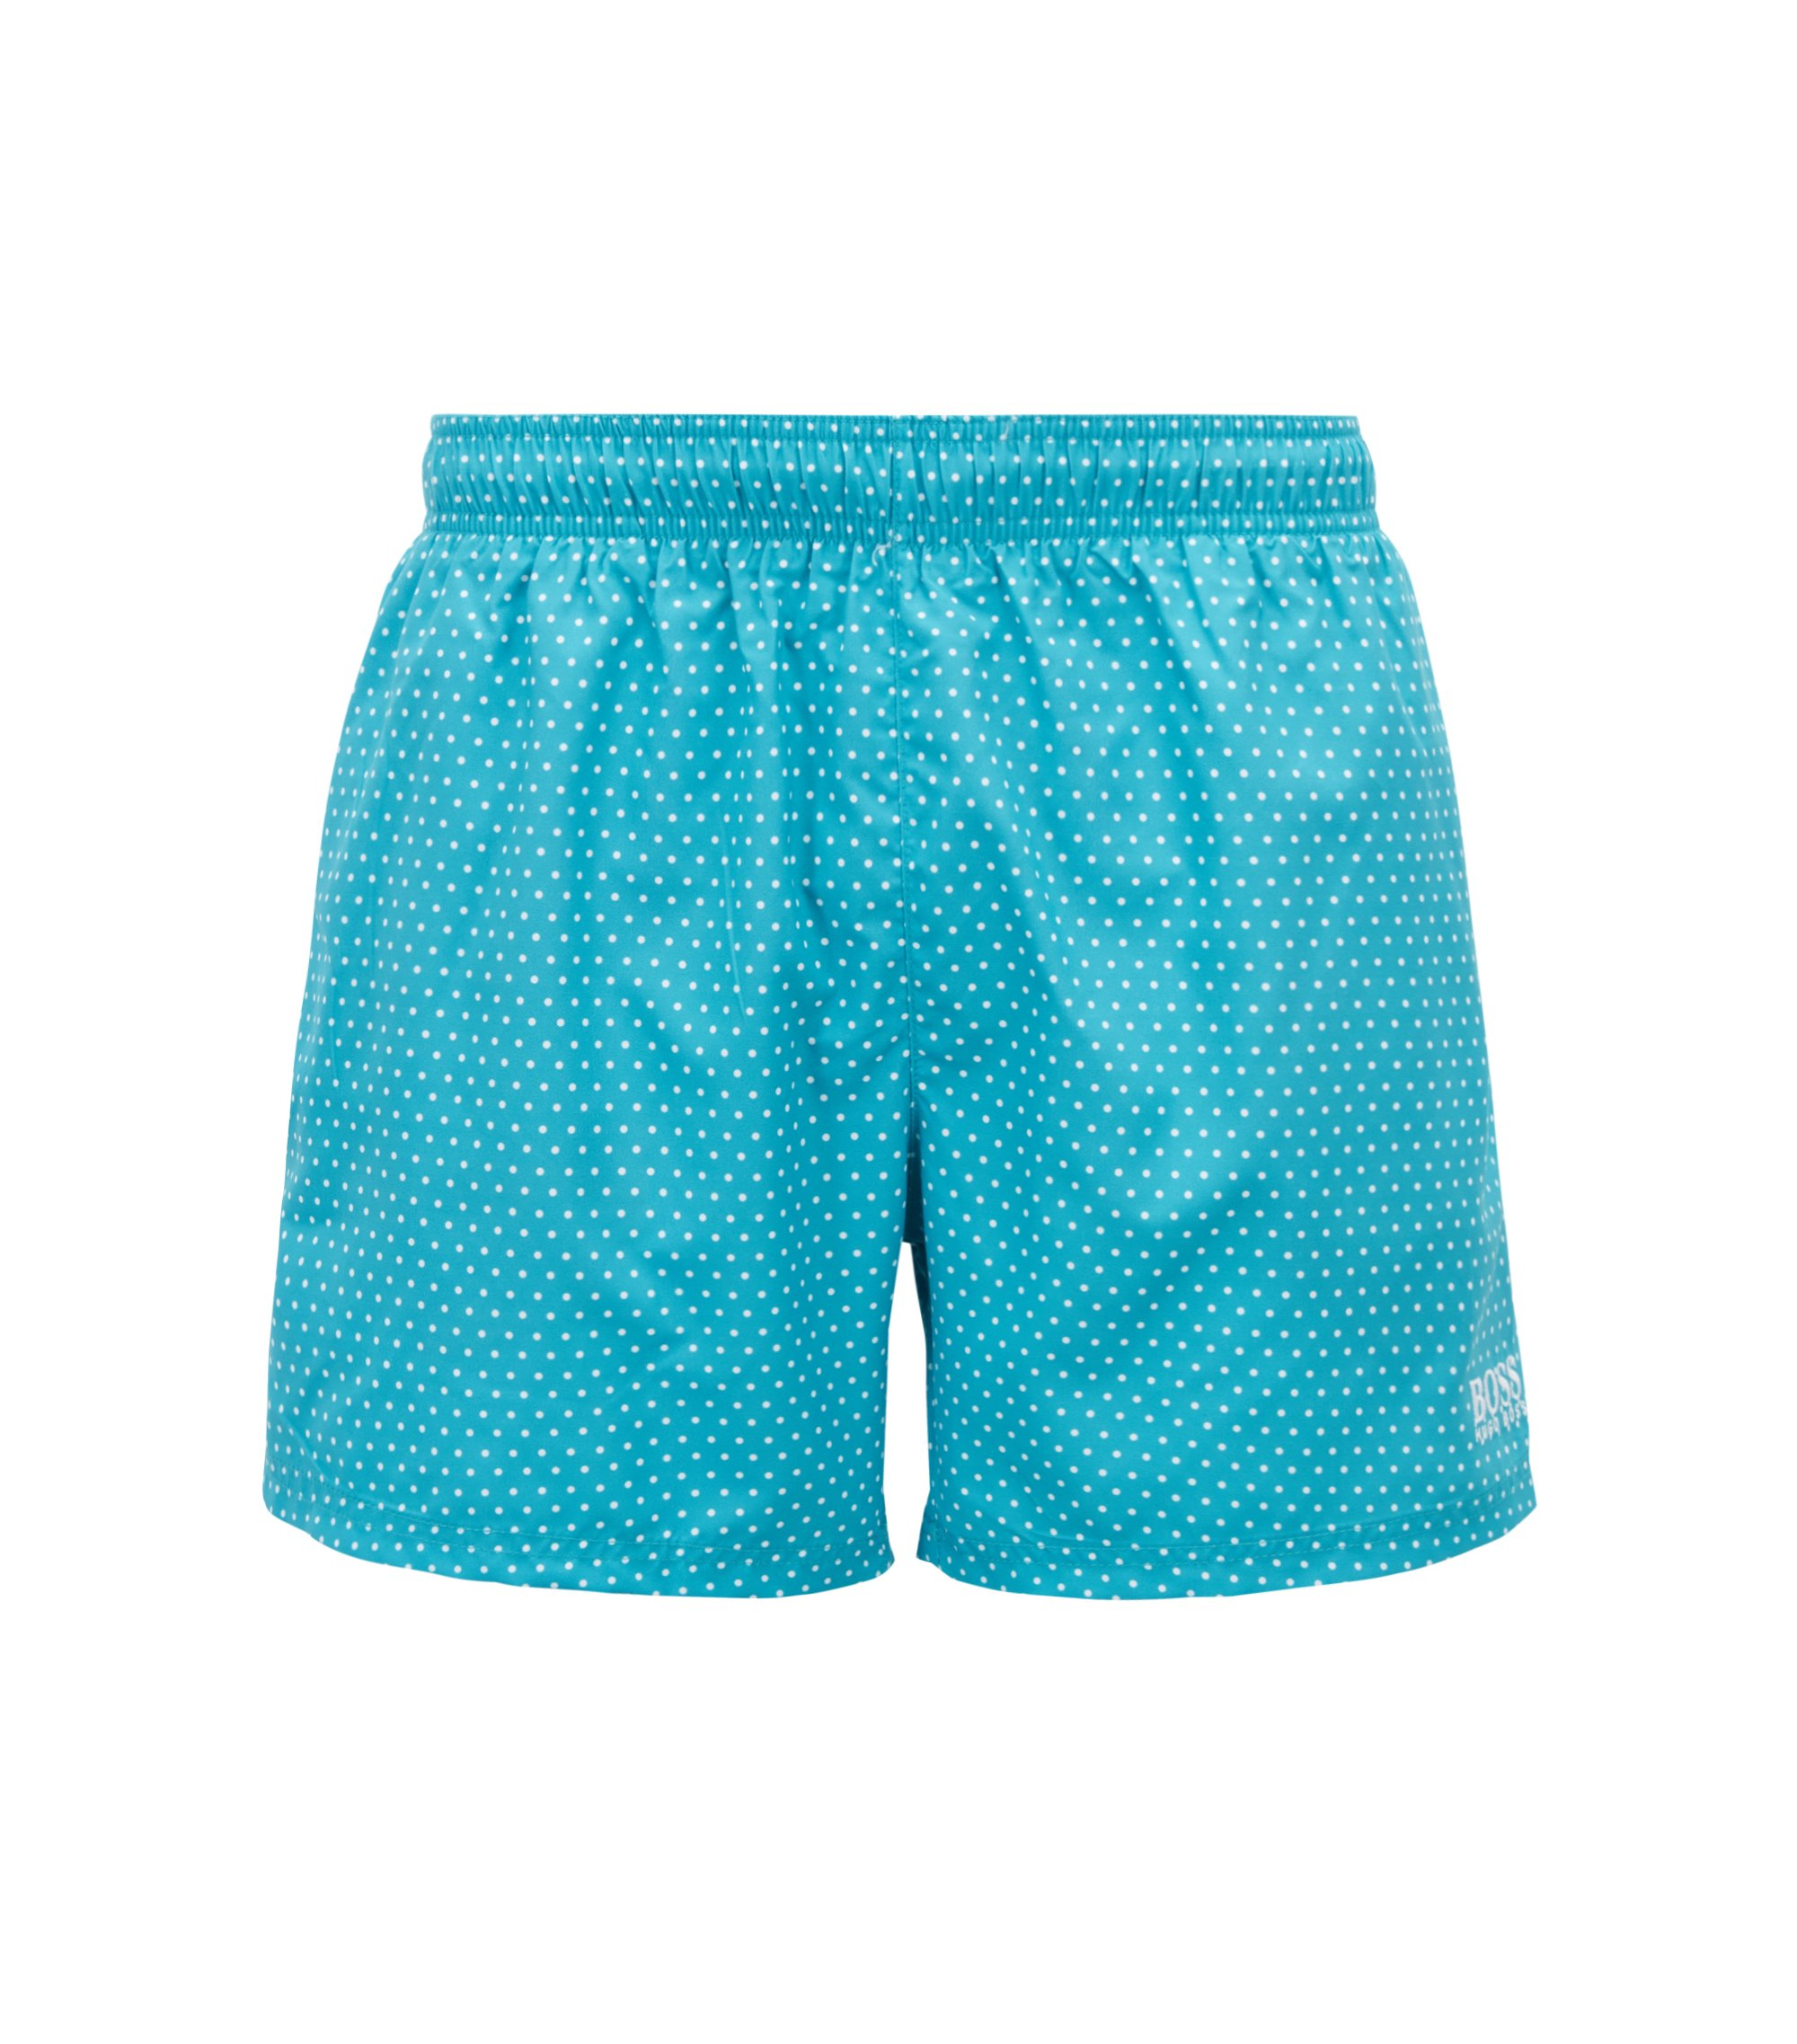 Short-length swim shorts with foil-printed pattern, Turquoise